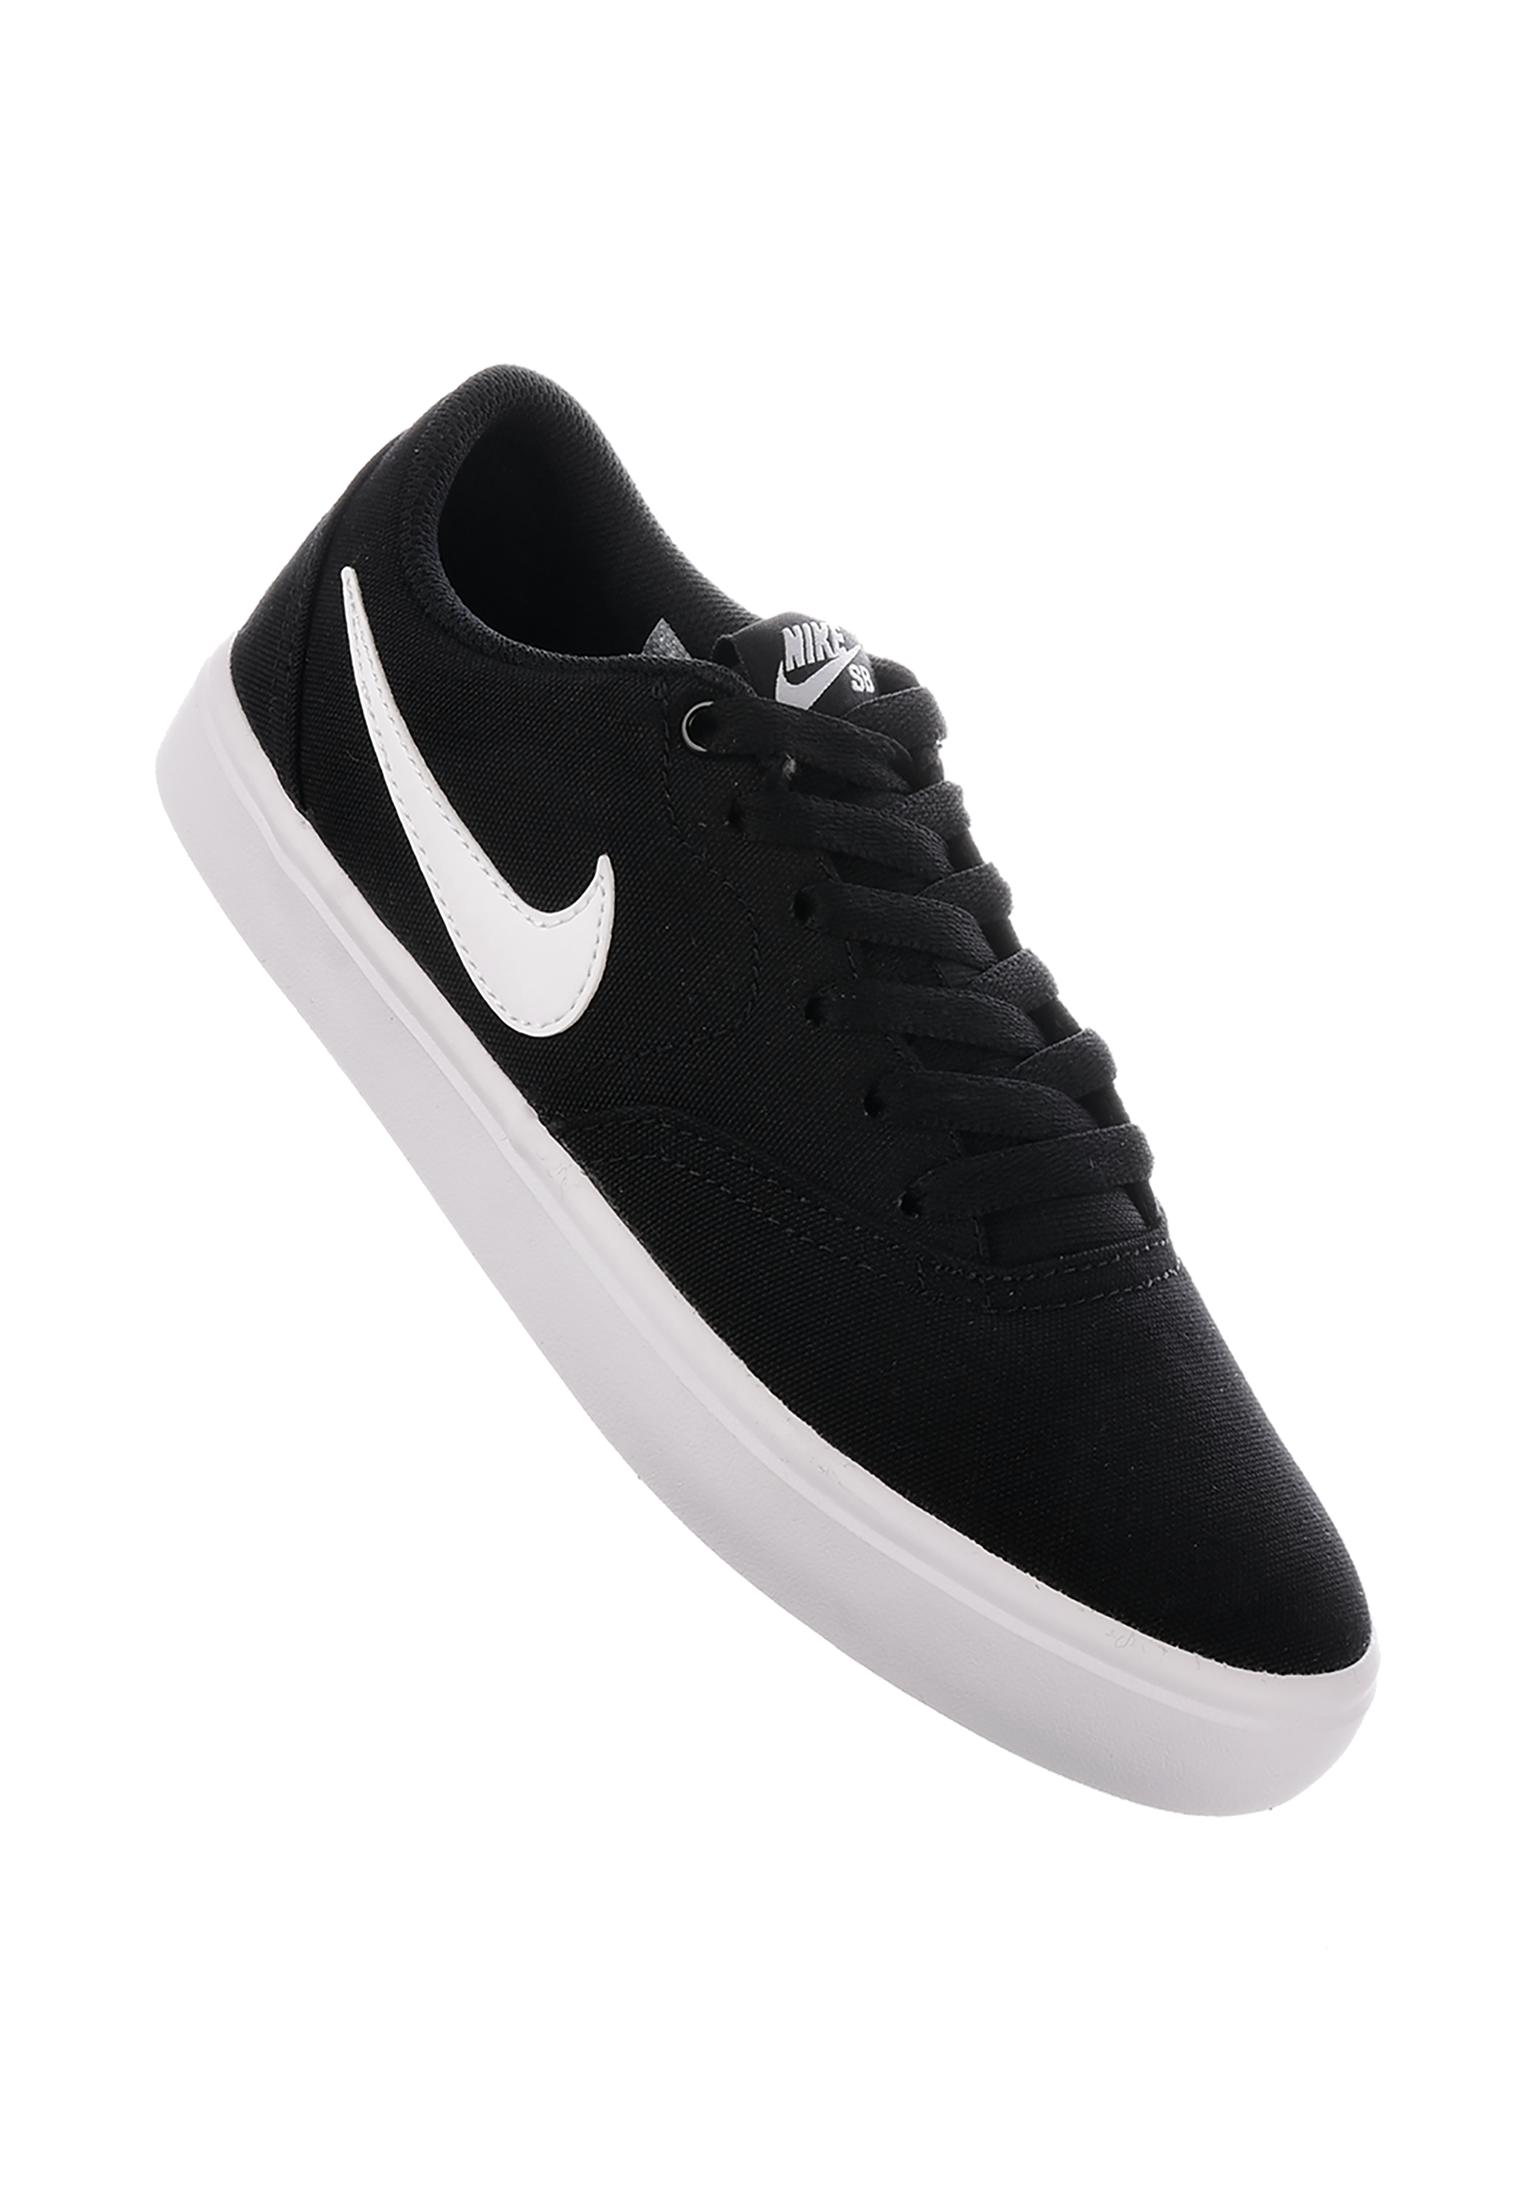 e1d21964f080 SB Check Solarsoft Nike SB All Shoes in black-white-pureplatinum for Women